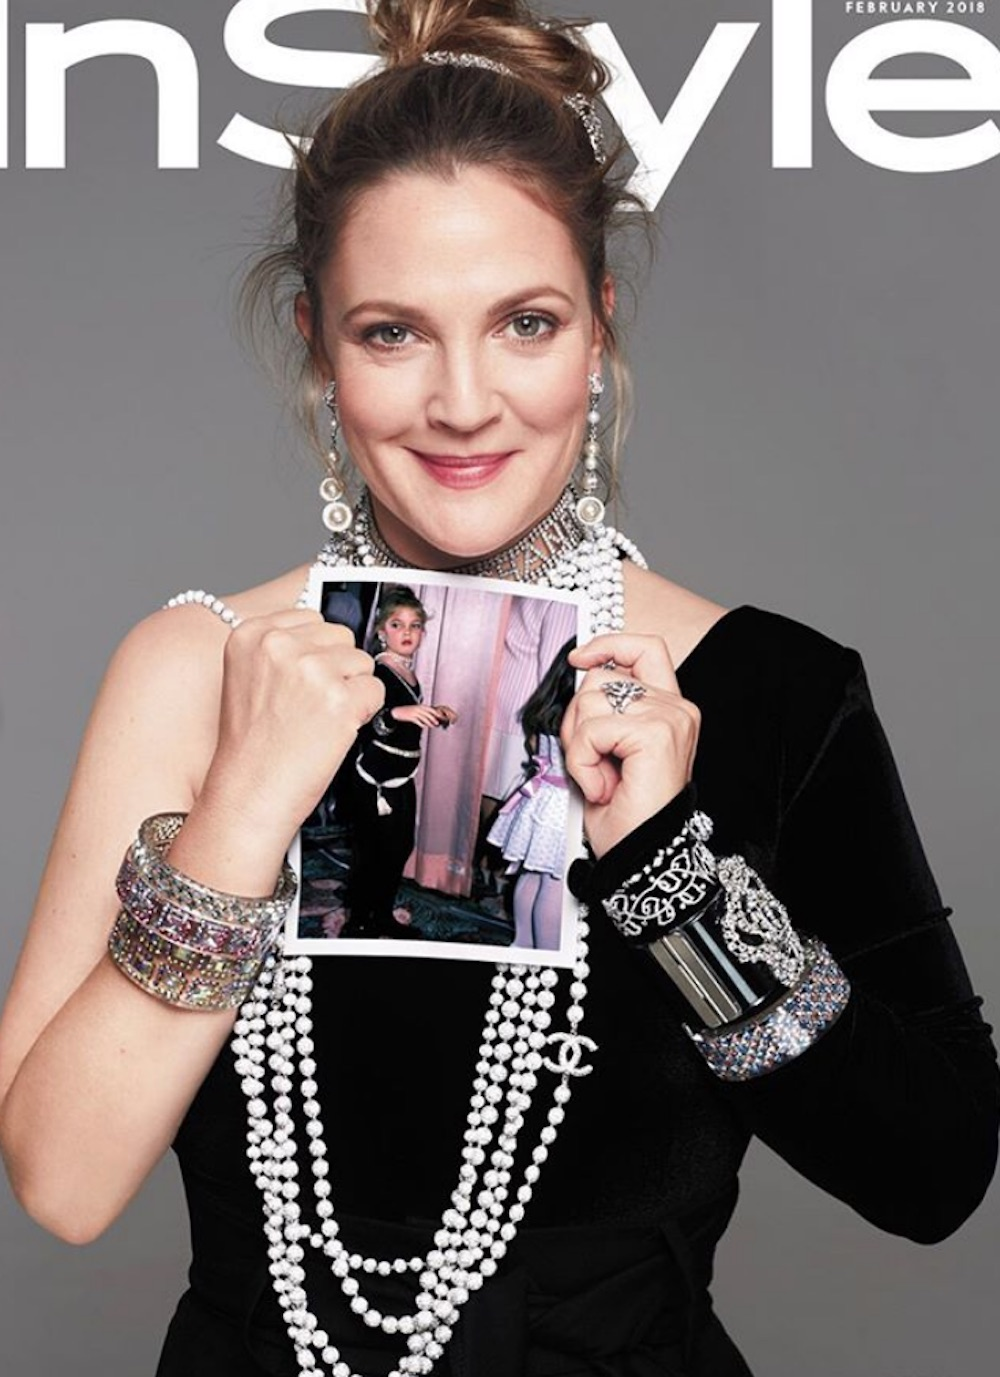 Drew Barrymore recreated her iconic childhood style, and it will speak to your '80s heart